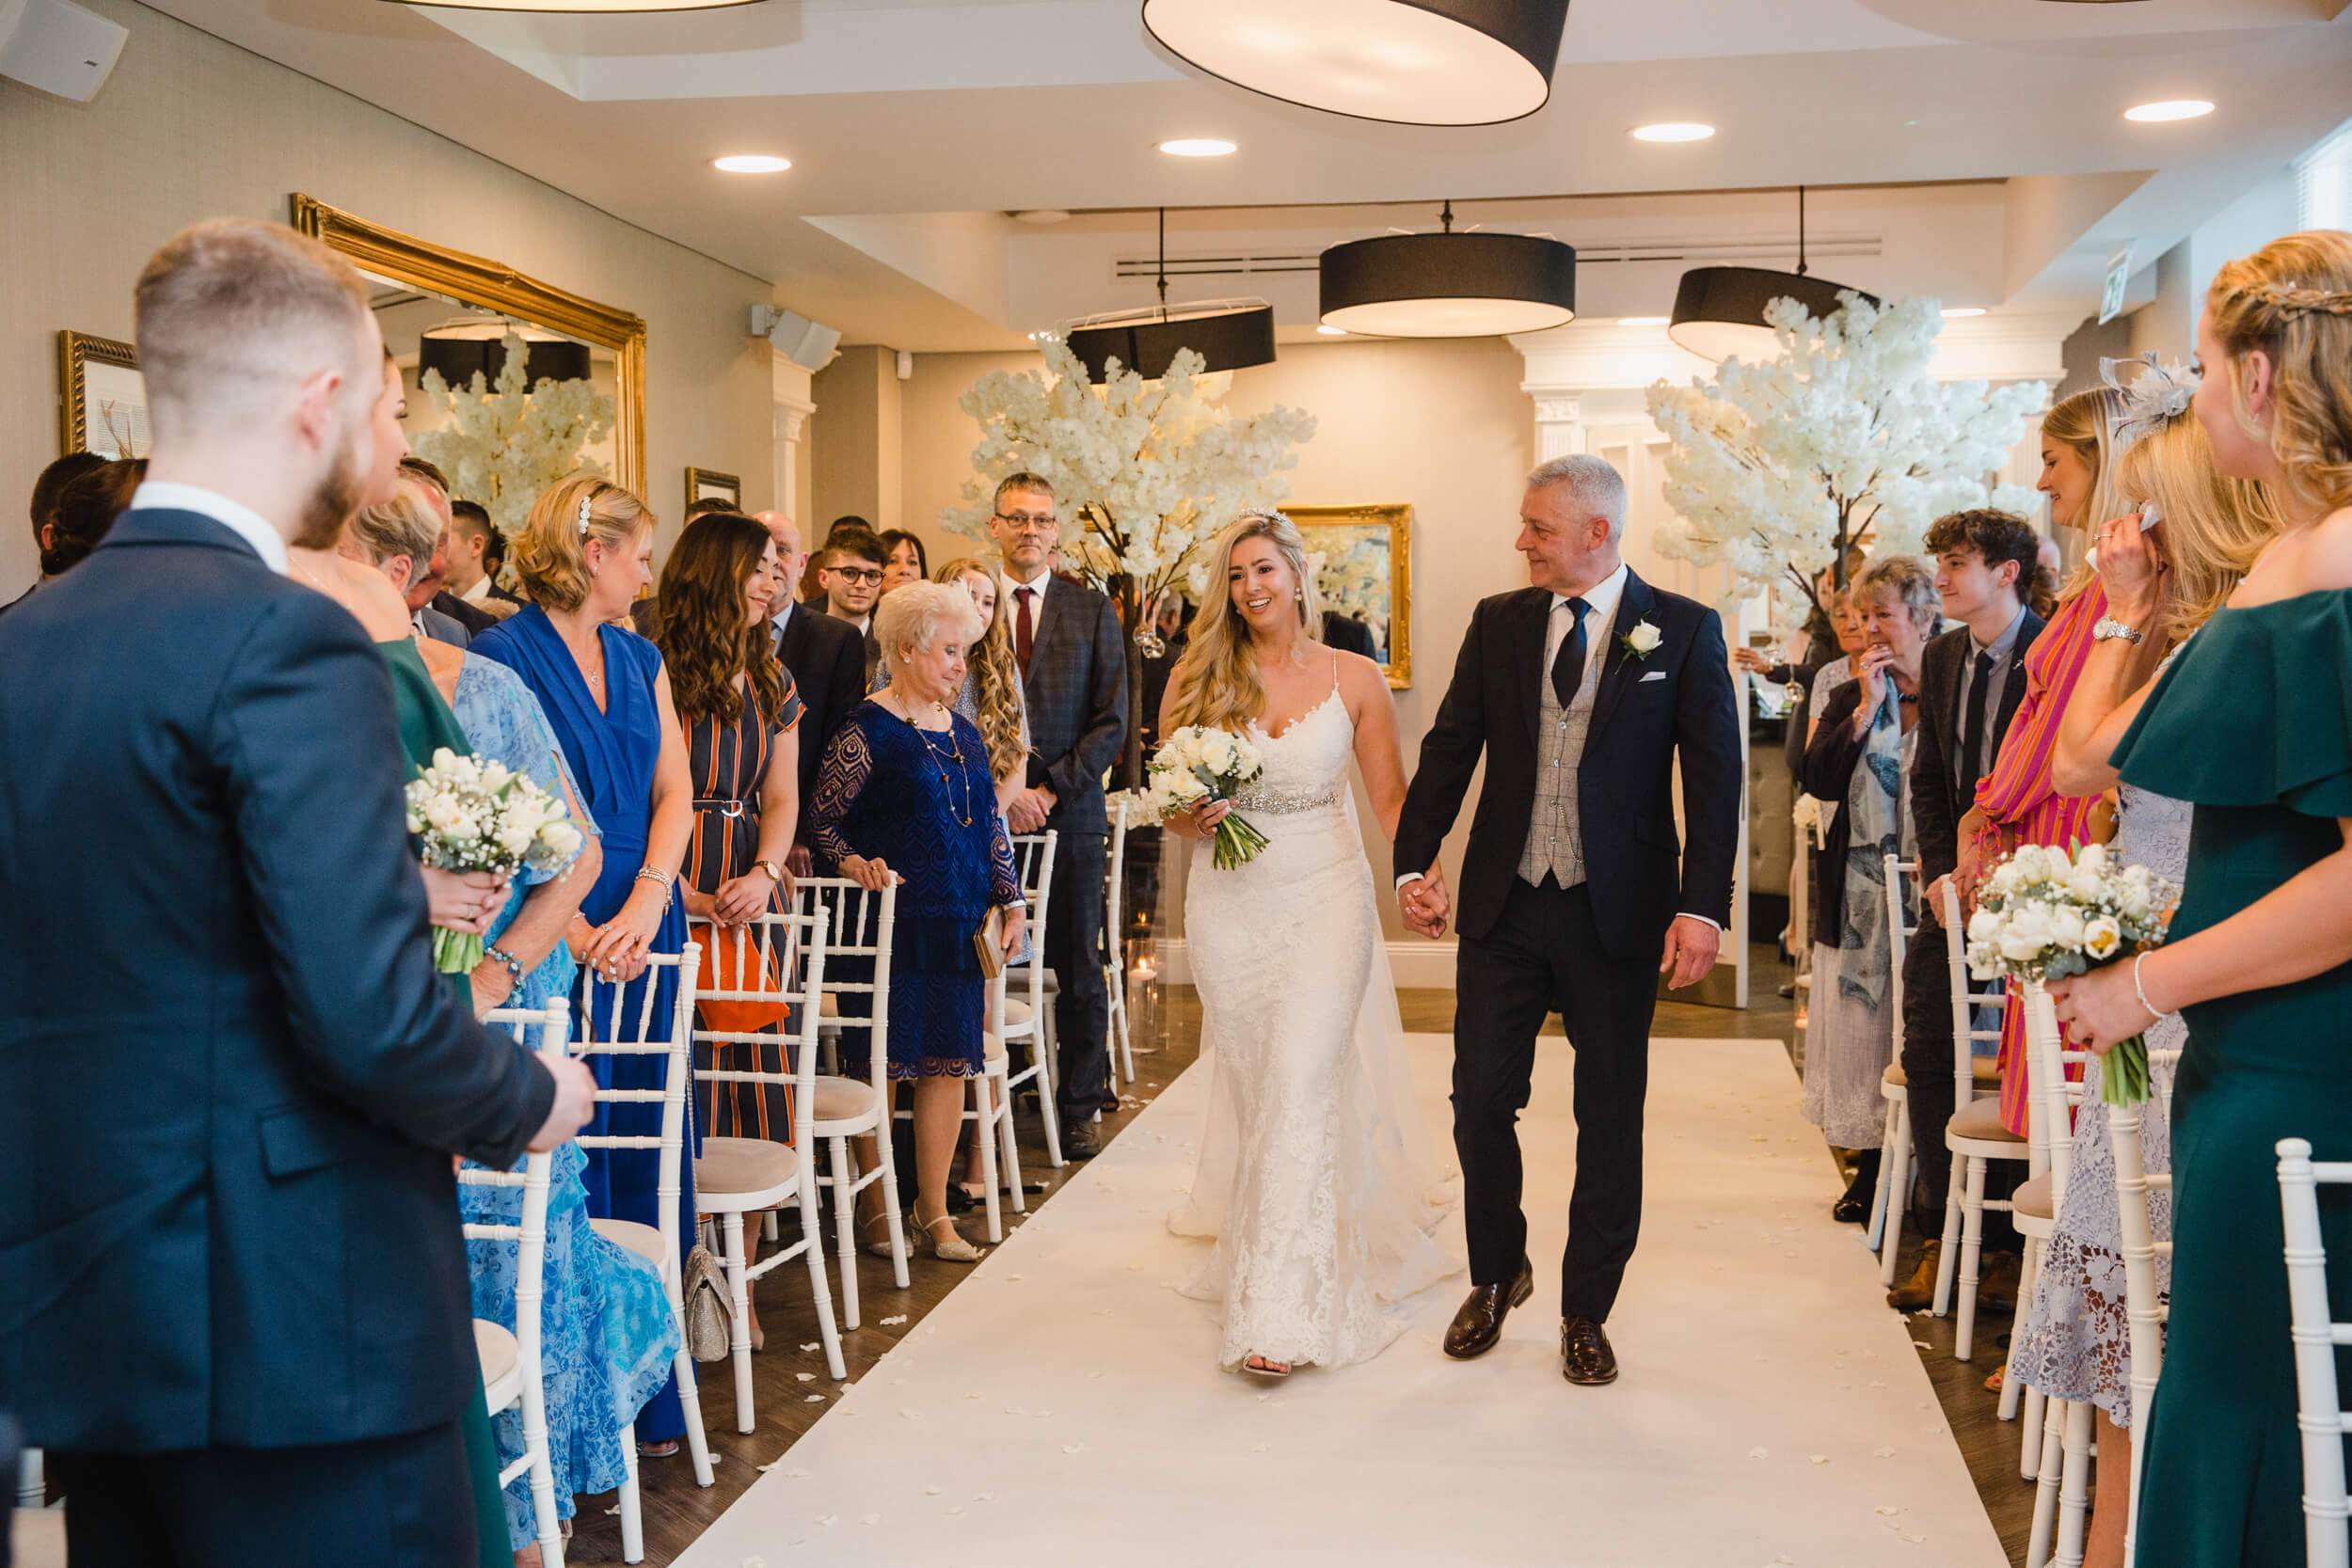 bride and father walk down aisle together surrounded by wedding party